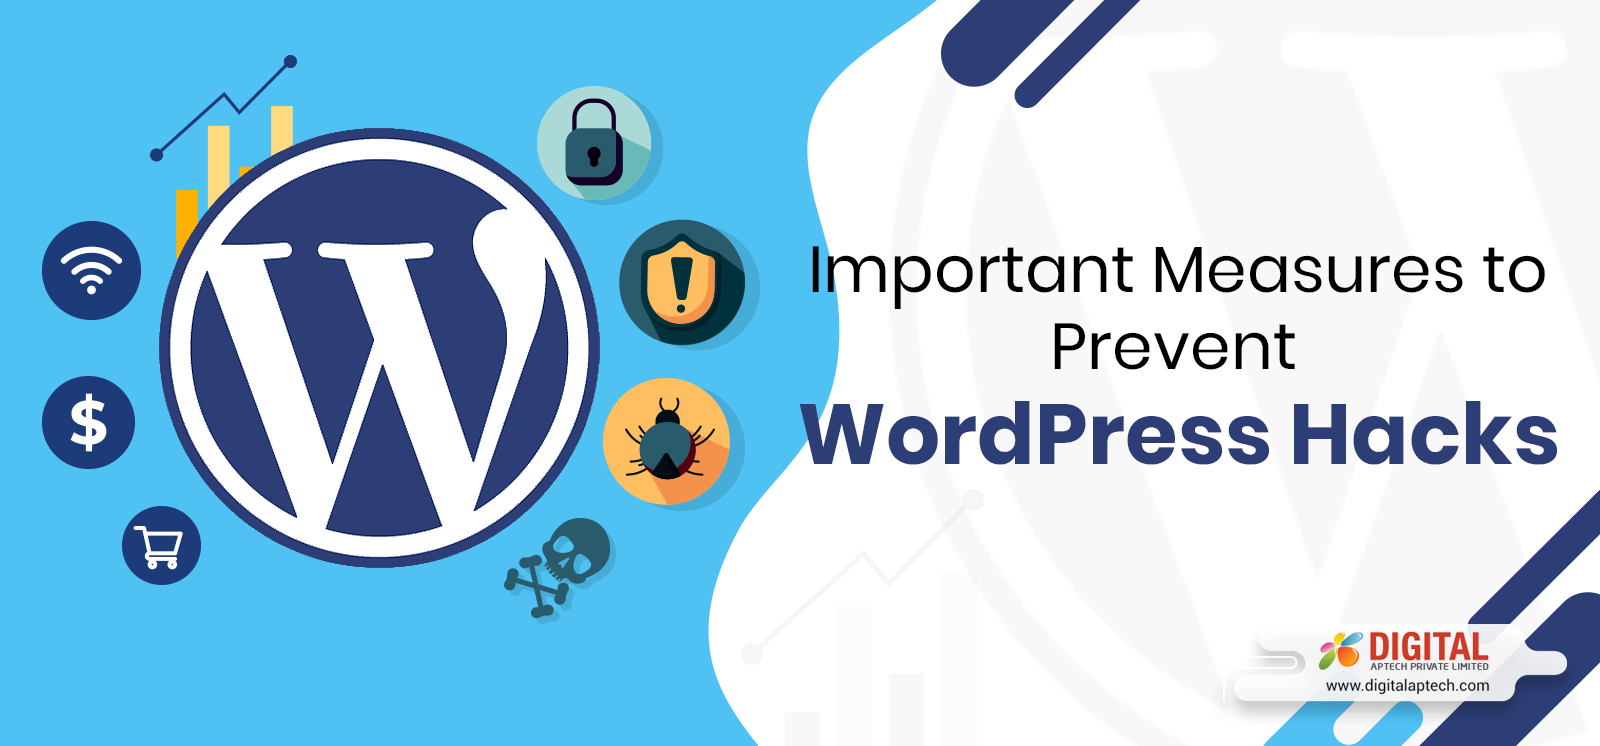 Important Measures to Prevent WordPress Hacks